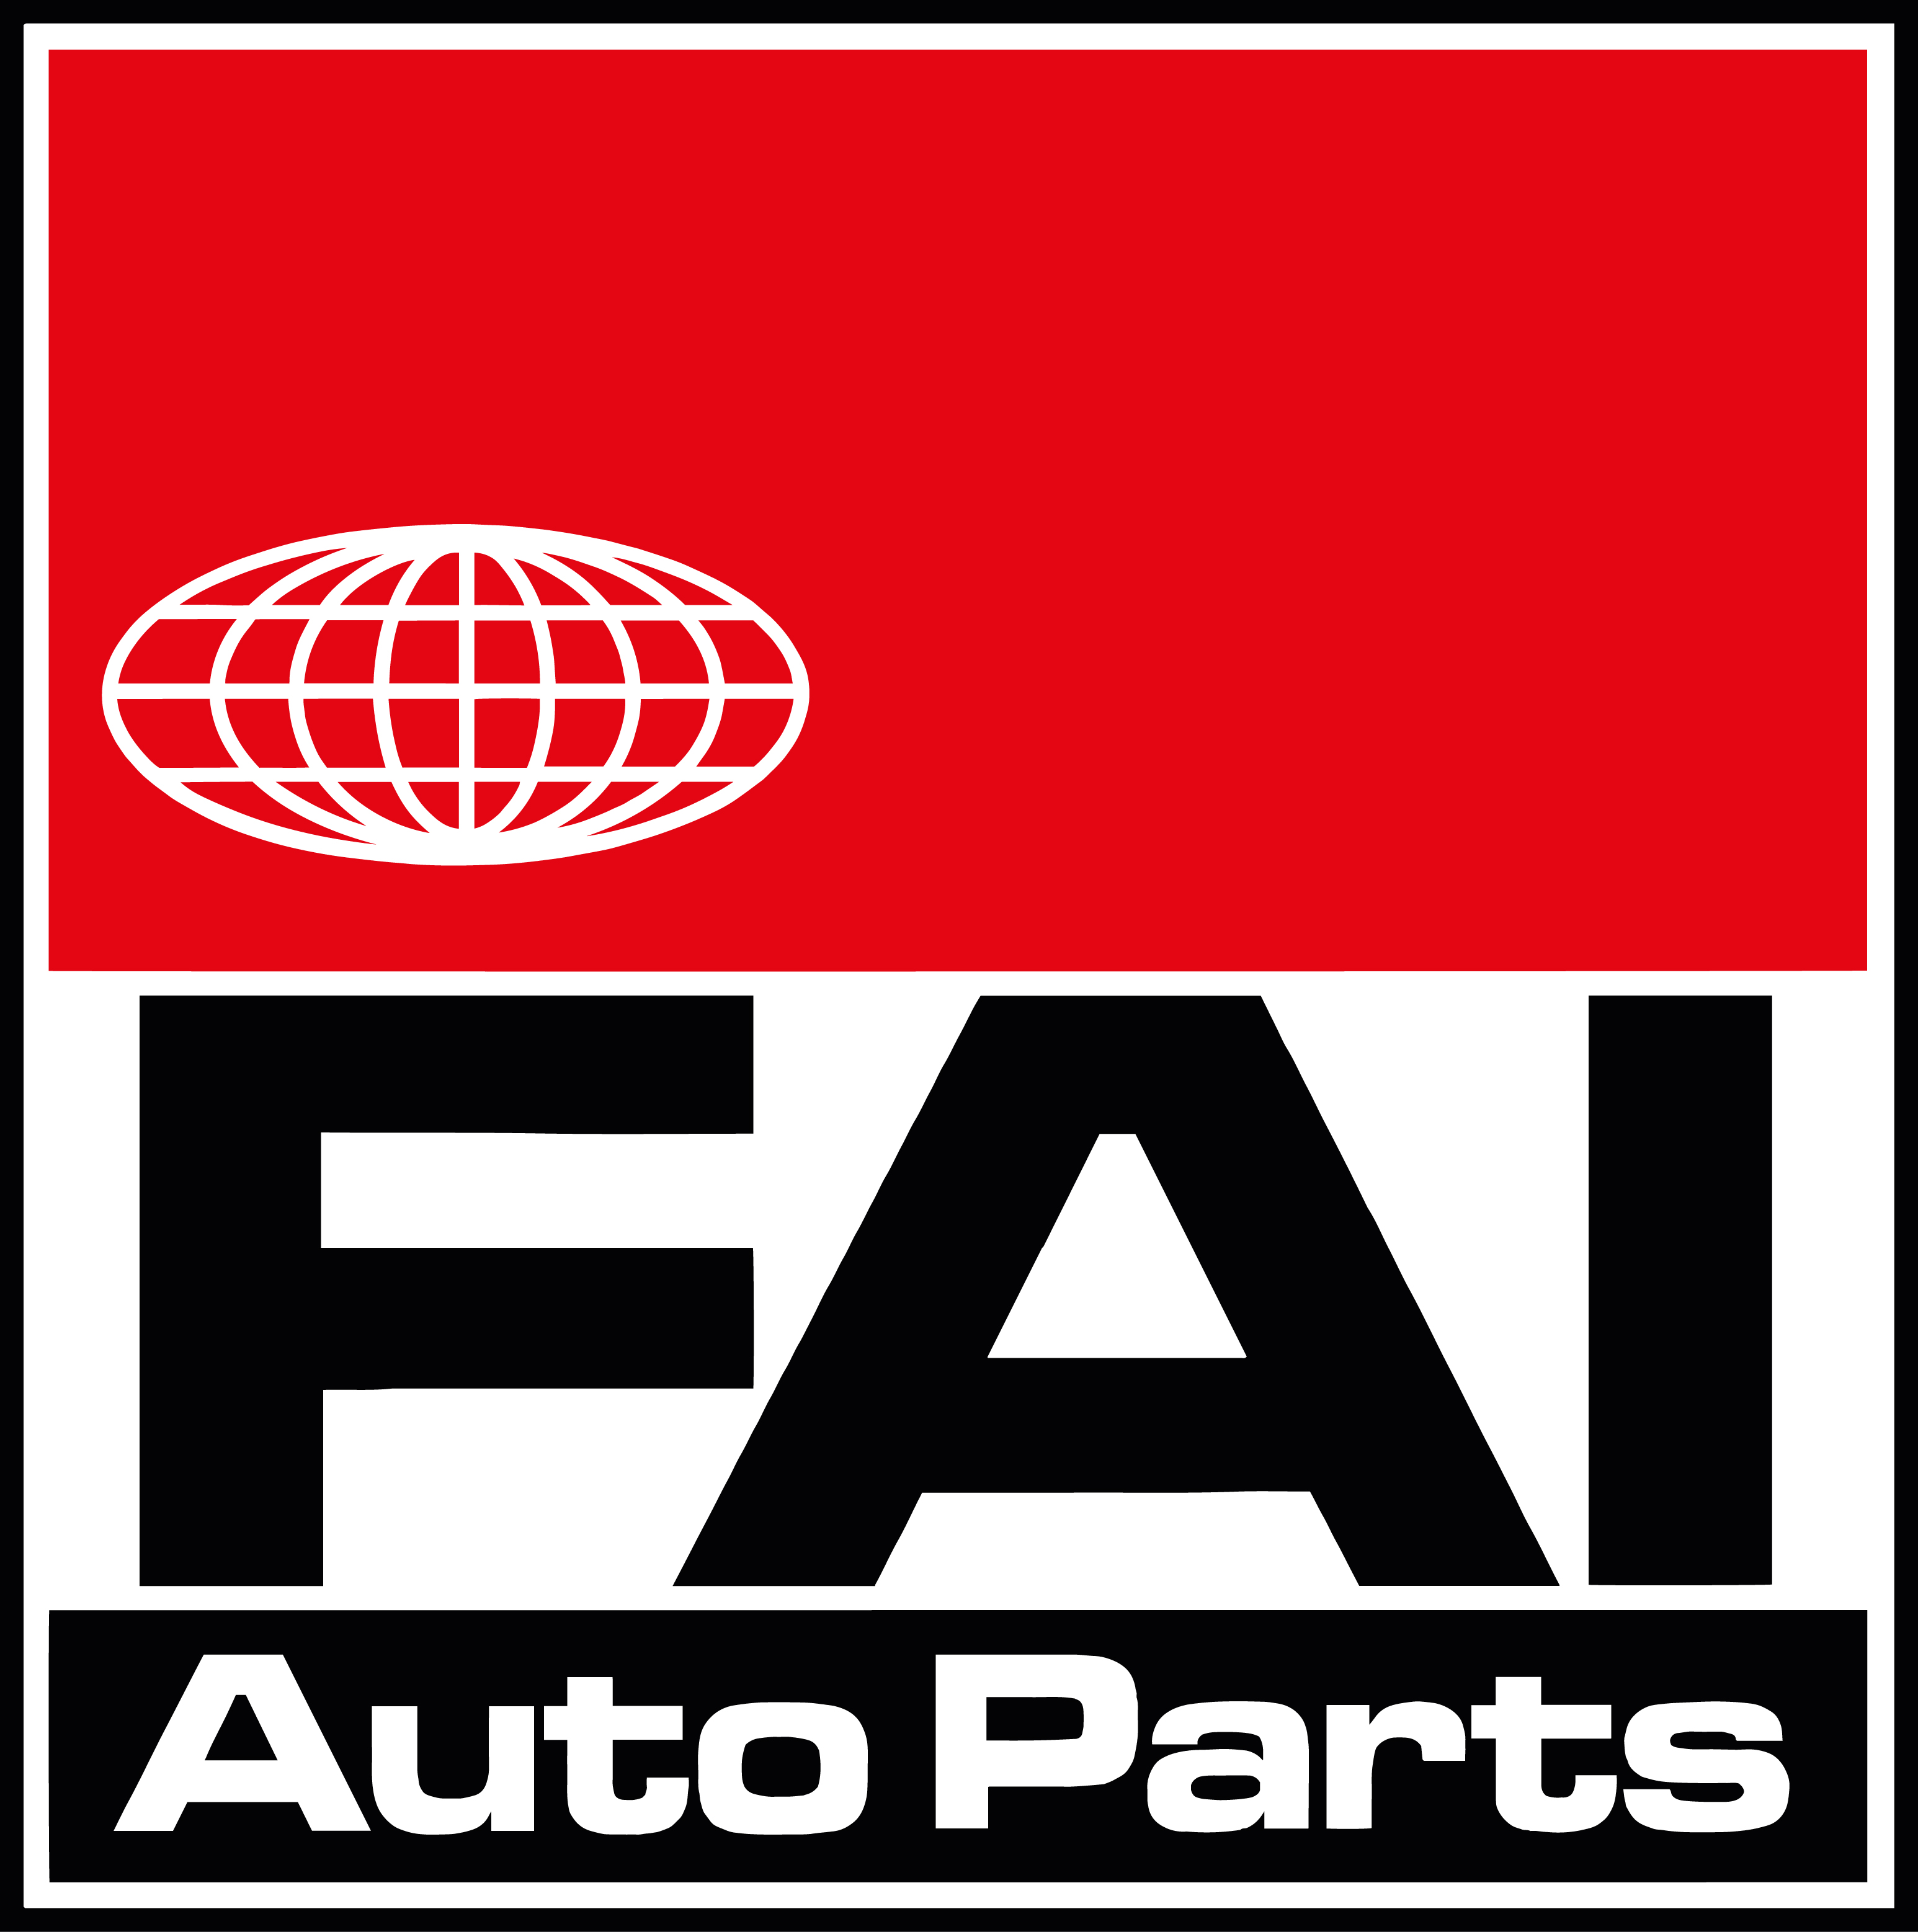 Premium Automotive Components - FAI Auto Parts